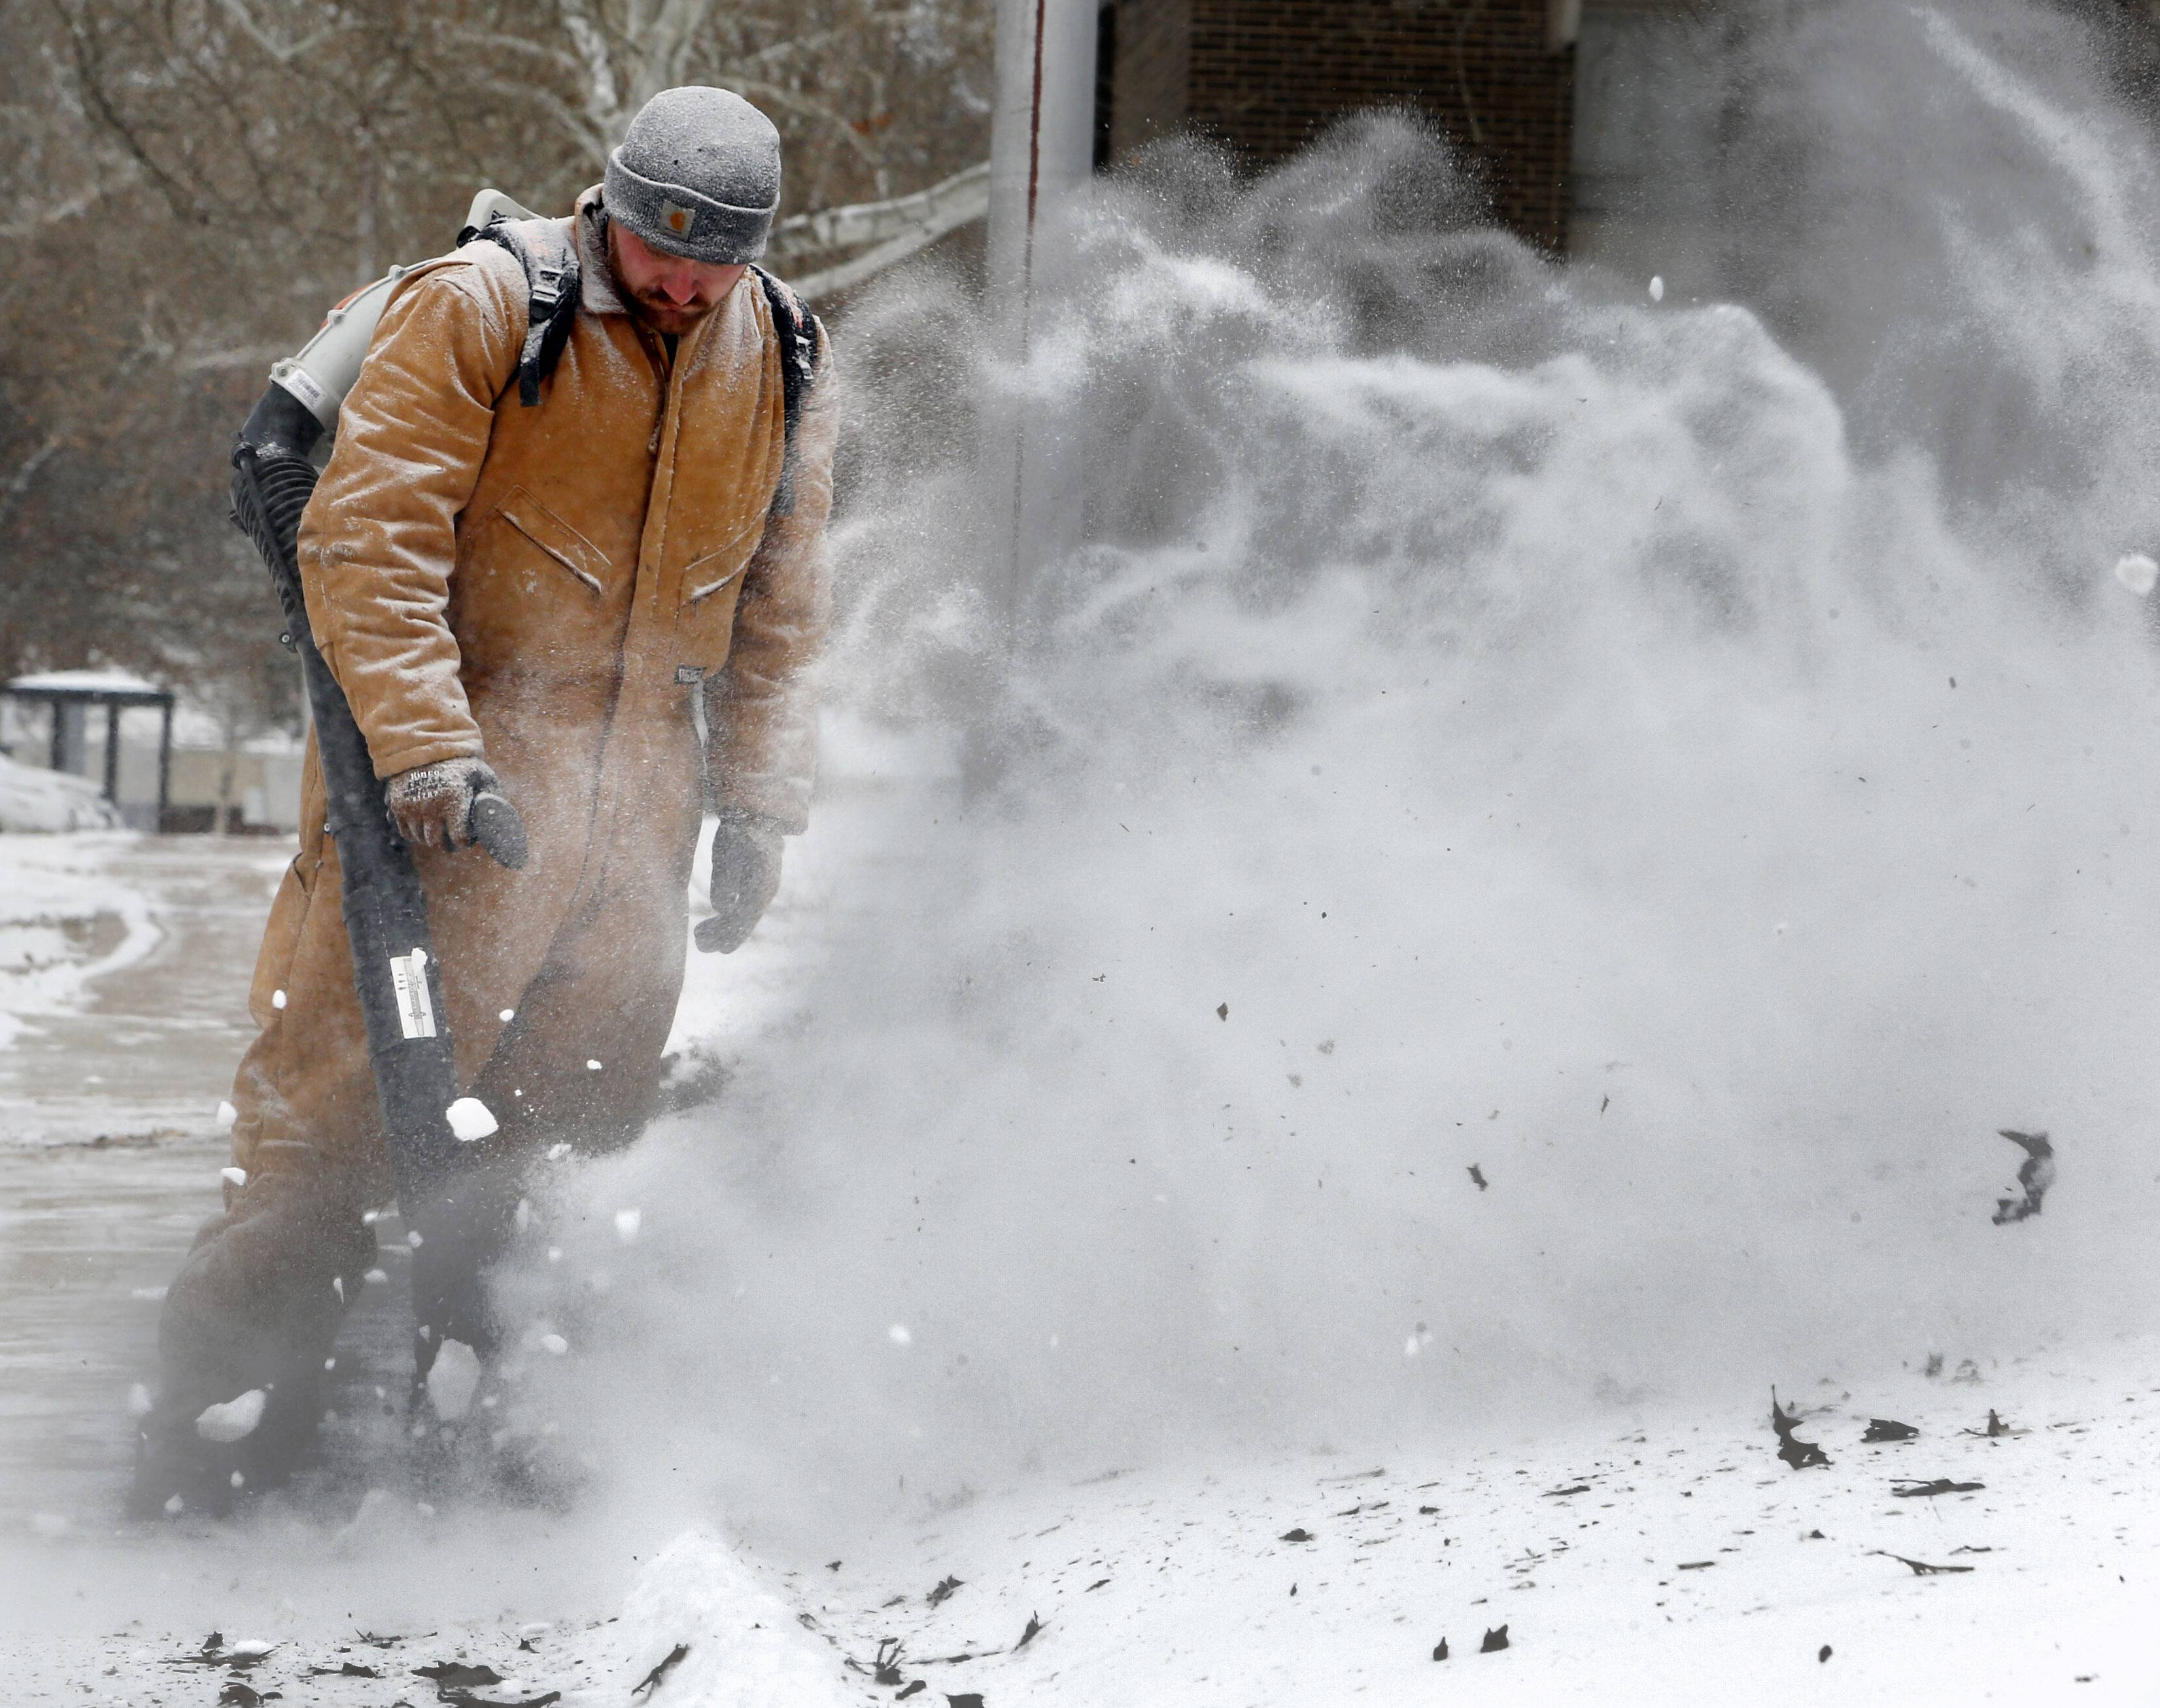 Eric Davis, irrigation department, uses a backpack blower to remove snow from sidewalks in frigid weather on the campus of the University of Oklahoma on Thursday, Feb. 6, 2014, in Norman, Okla.